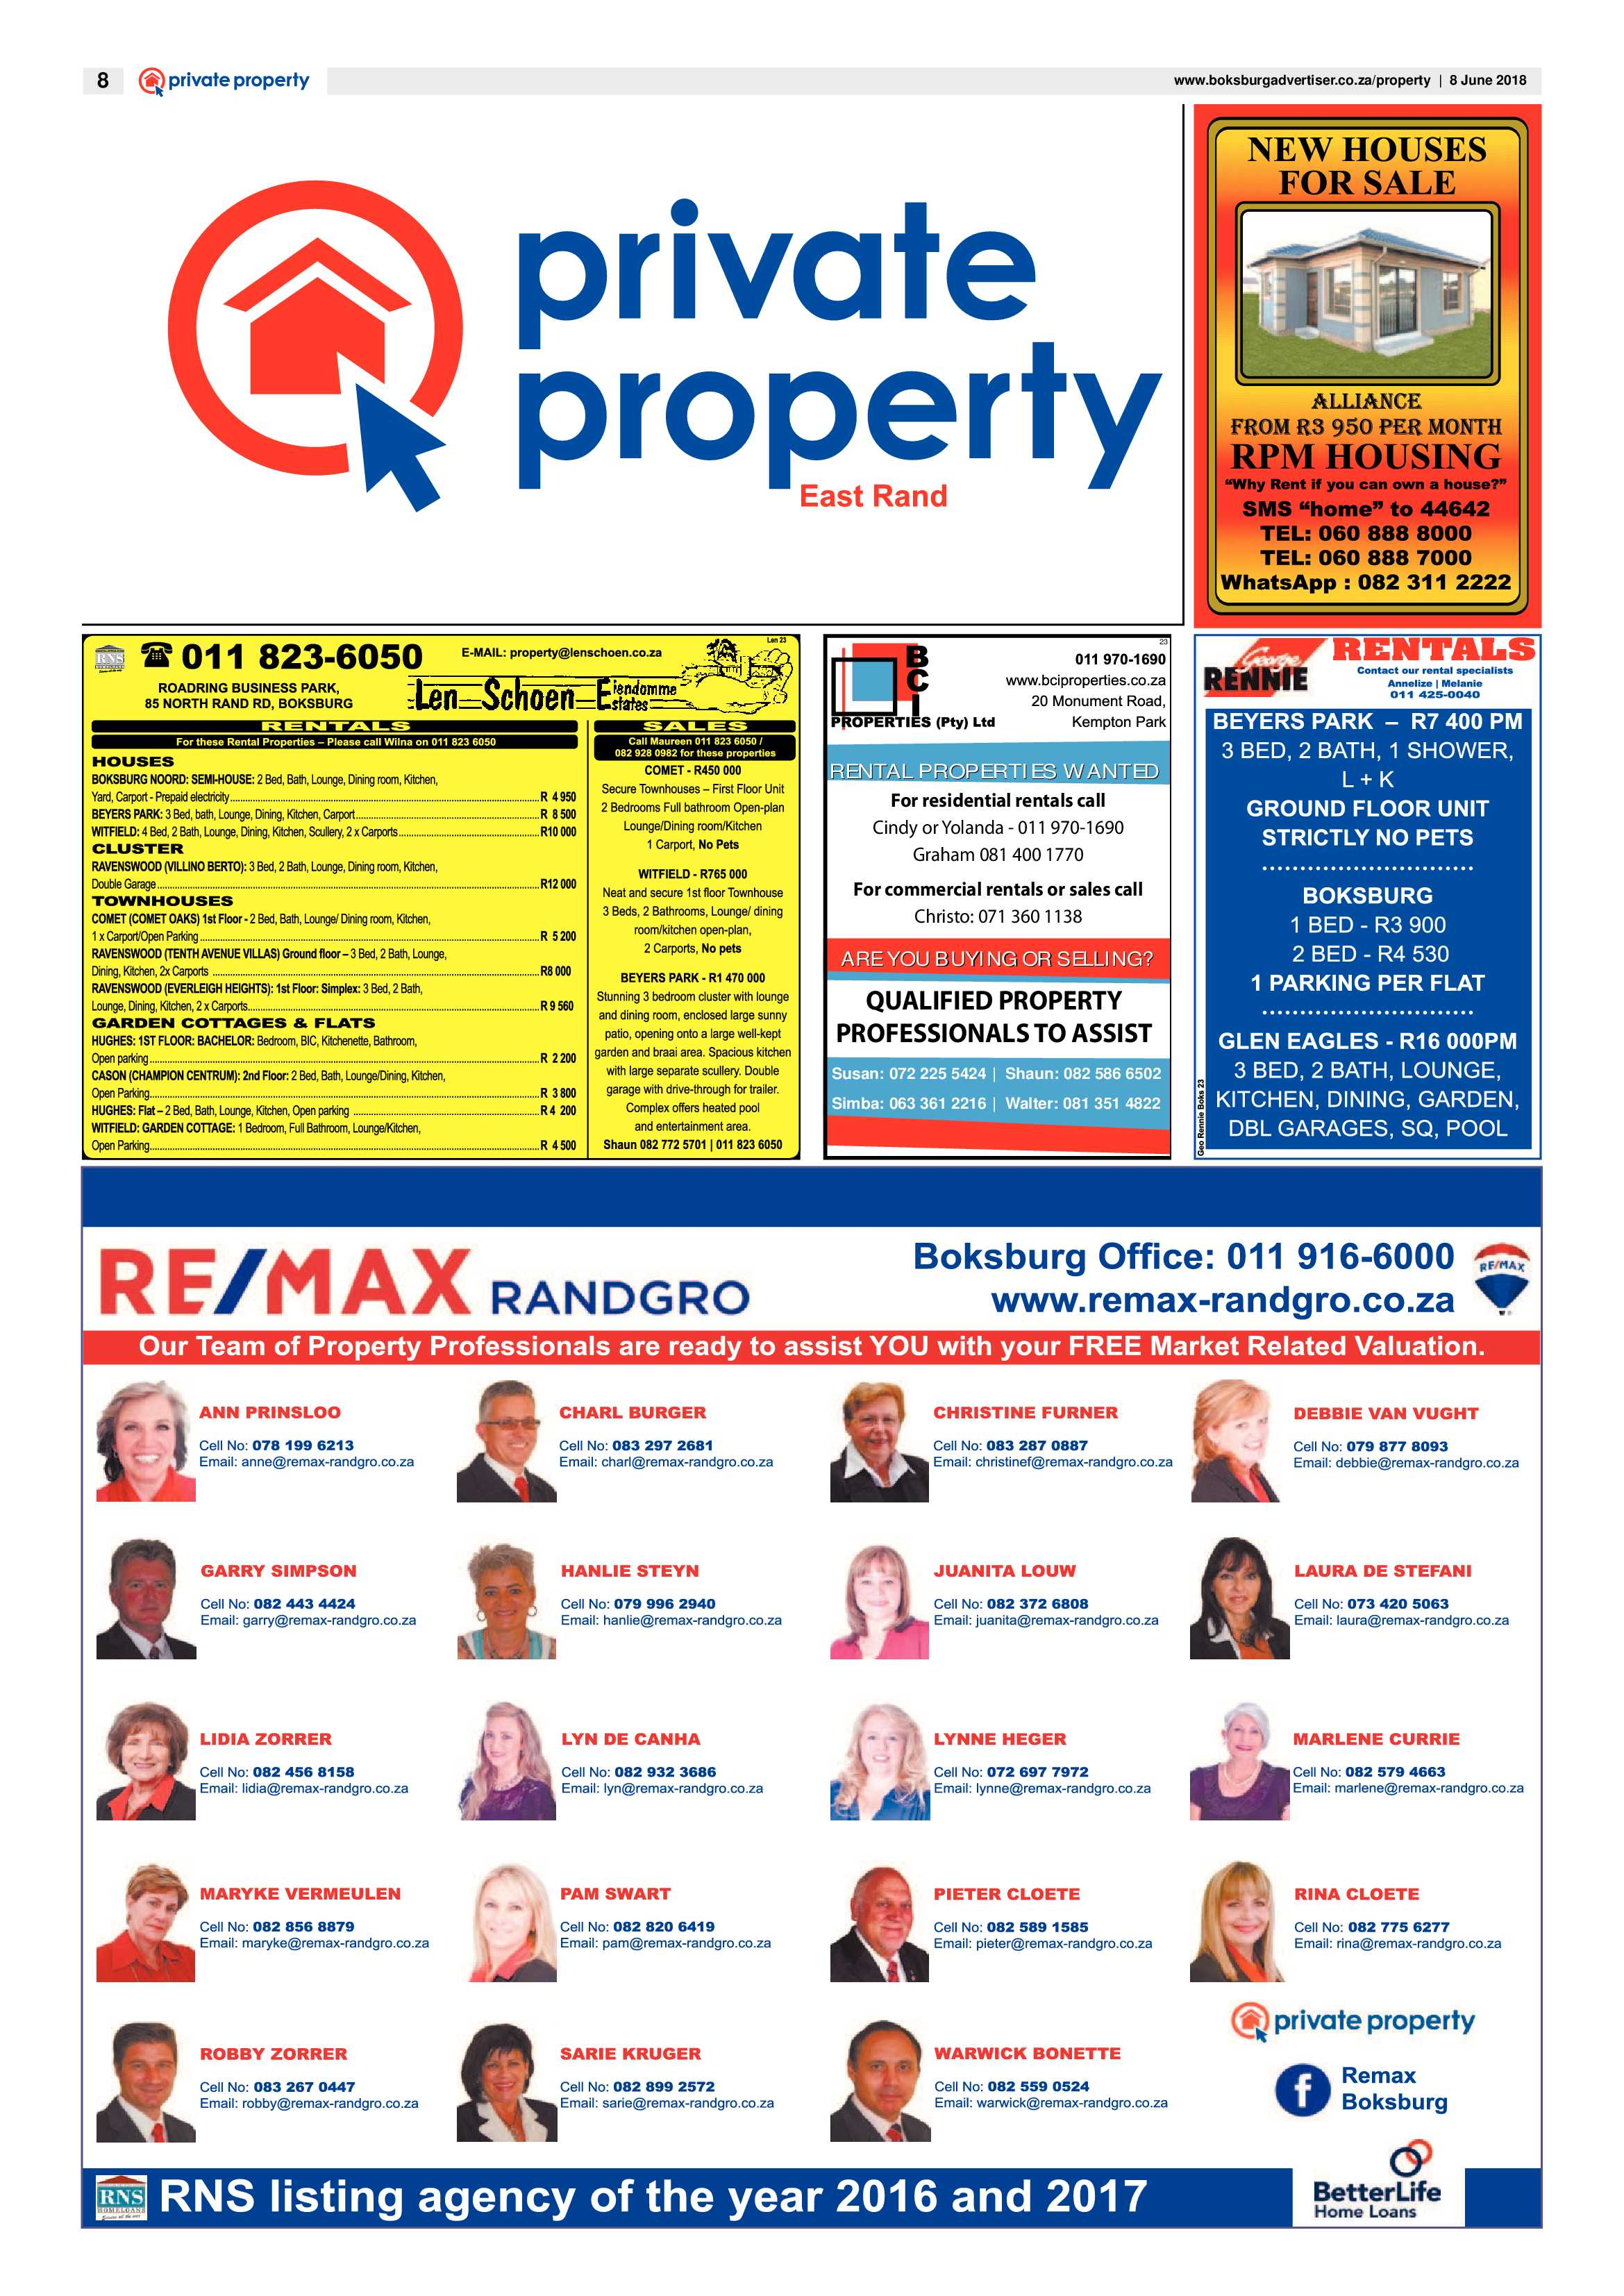 private-property-05-june-2018-epapers-page-1